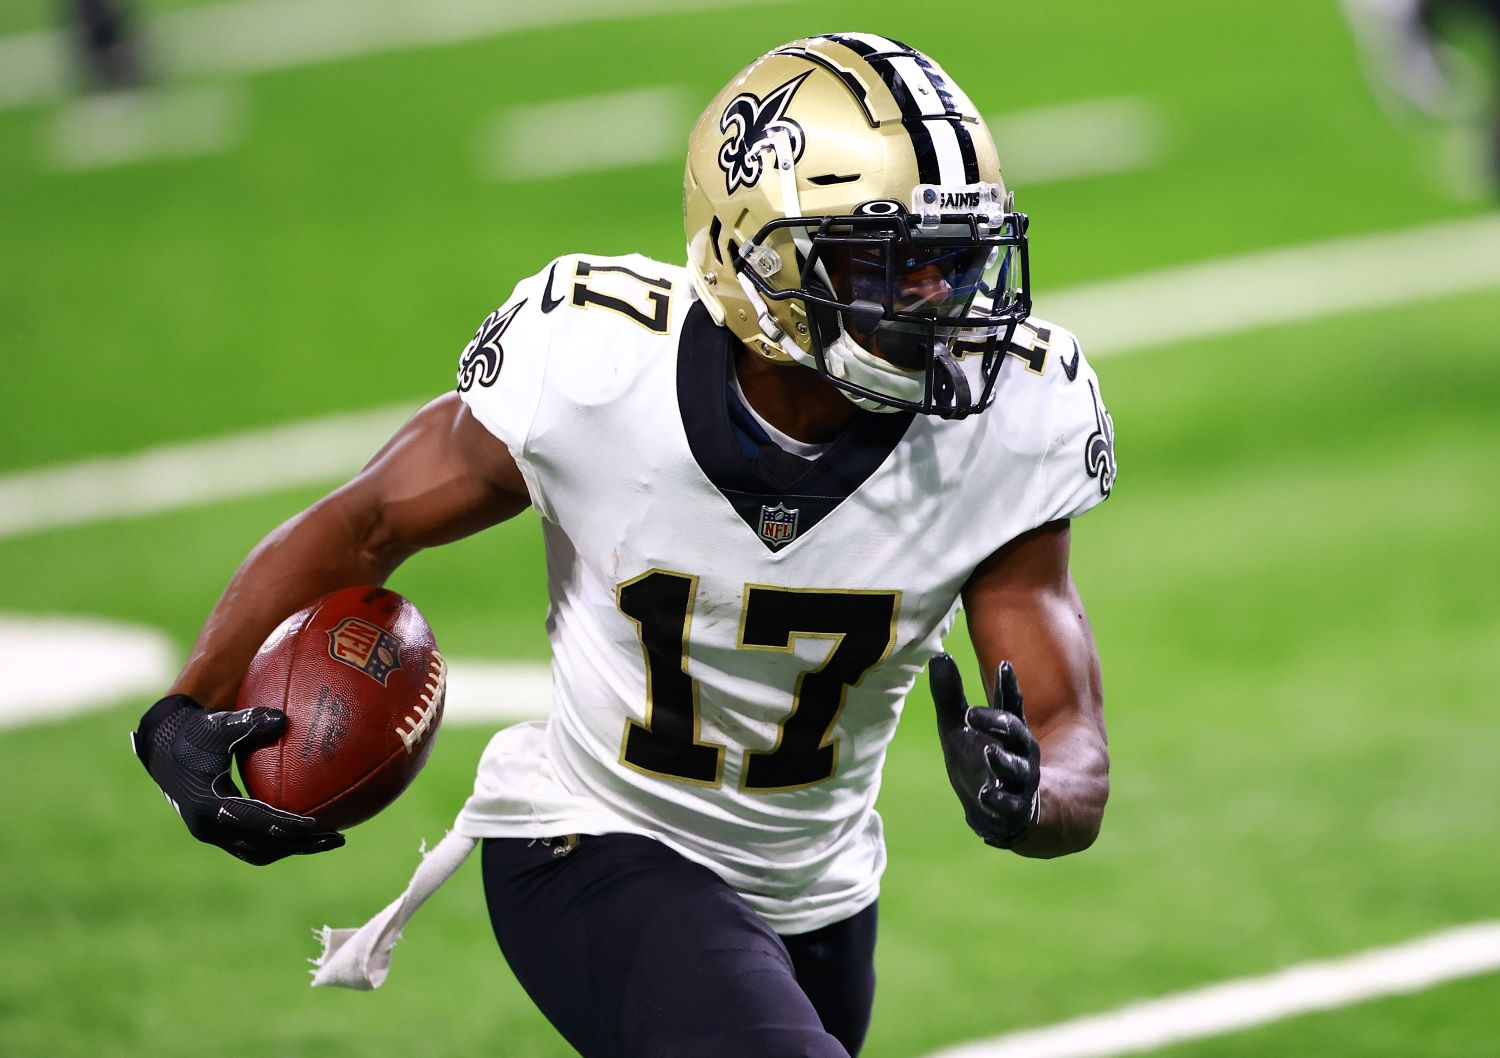 The Saints just suffered a brutal COVID-19 blow with Emmanuel Sanders landing on the reserve/COVID-19 list just two days before New Orleans takes on the Carolina Panthers.